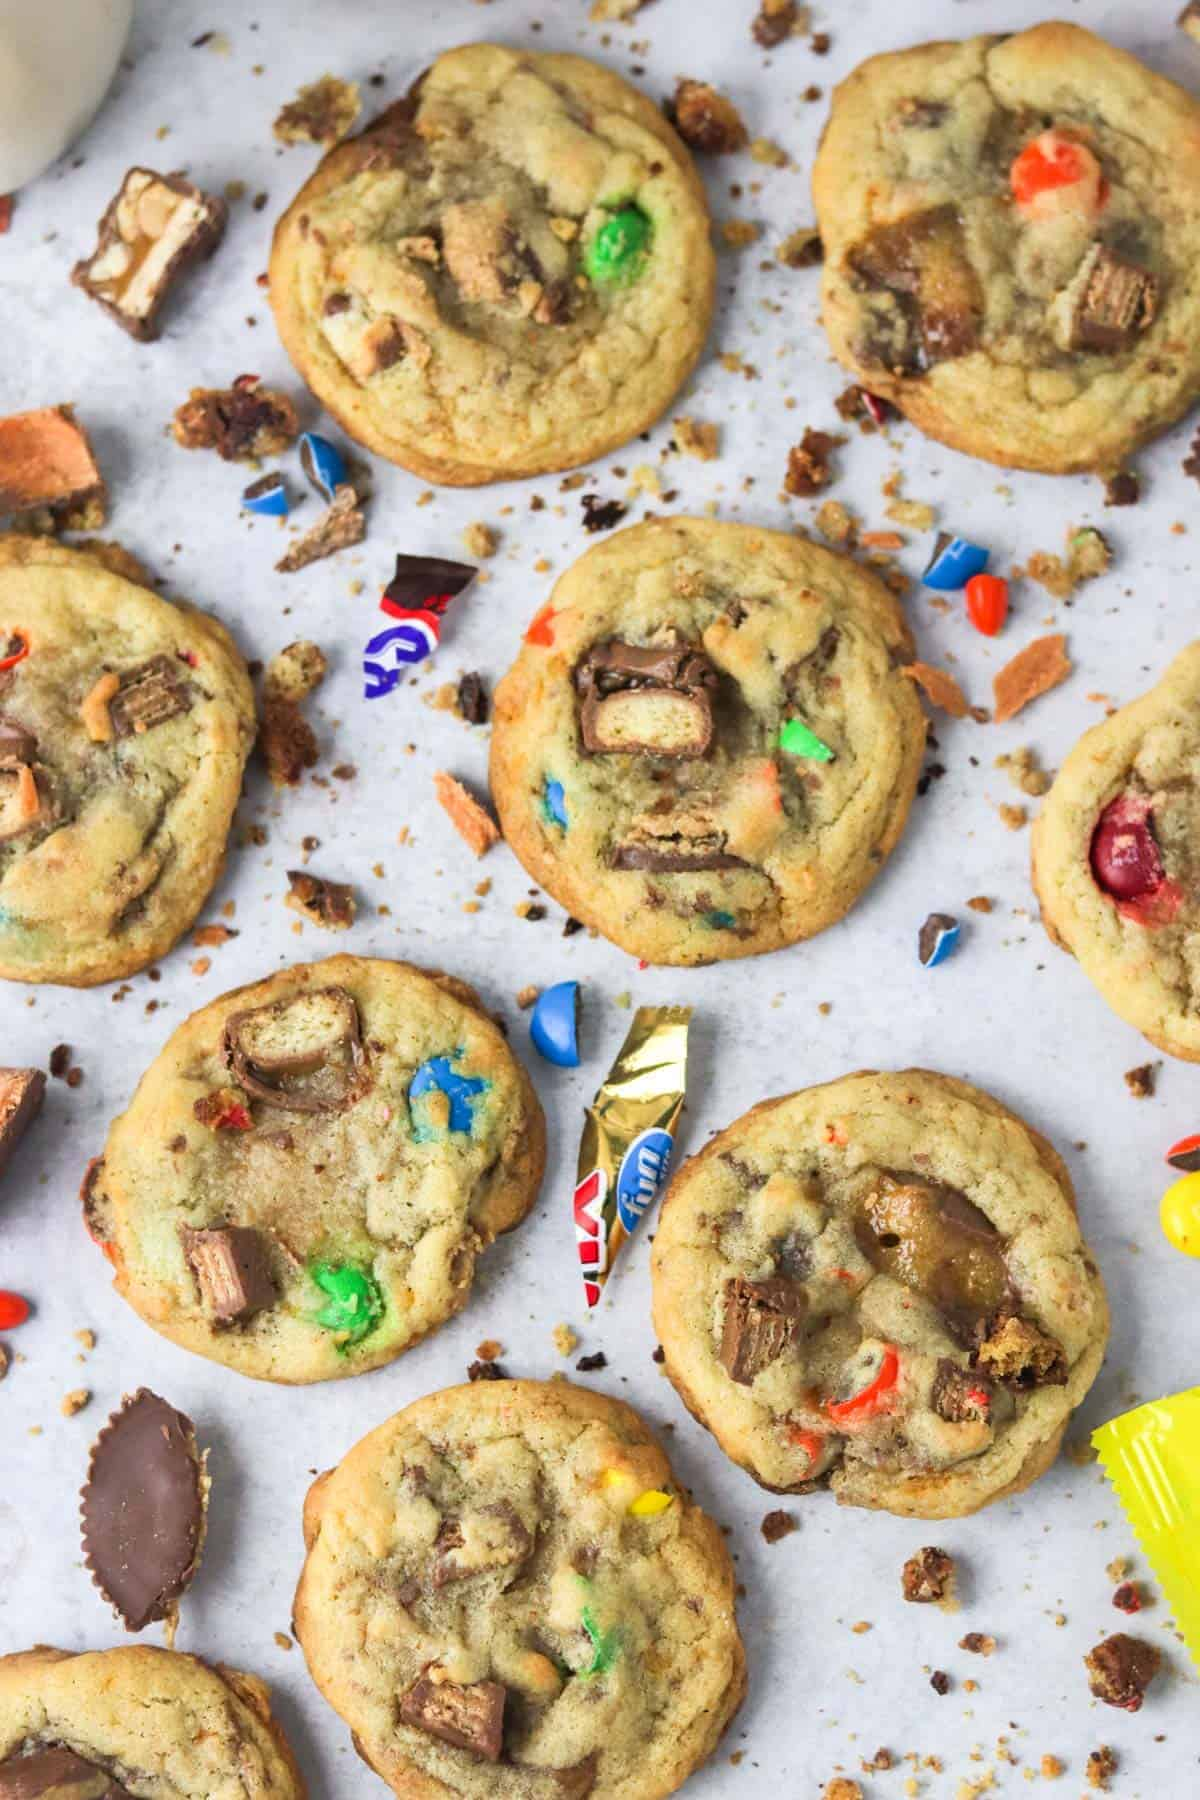 A close up of many candy cookies on the counter with candy pieces around them.